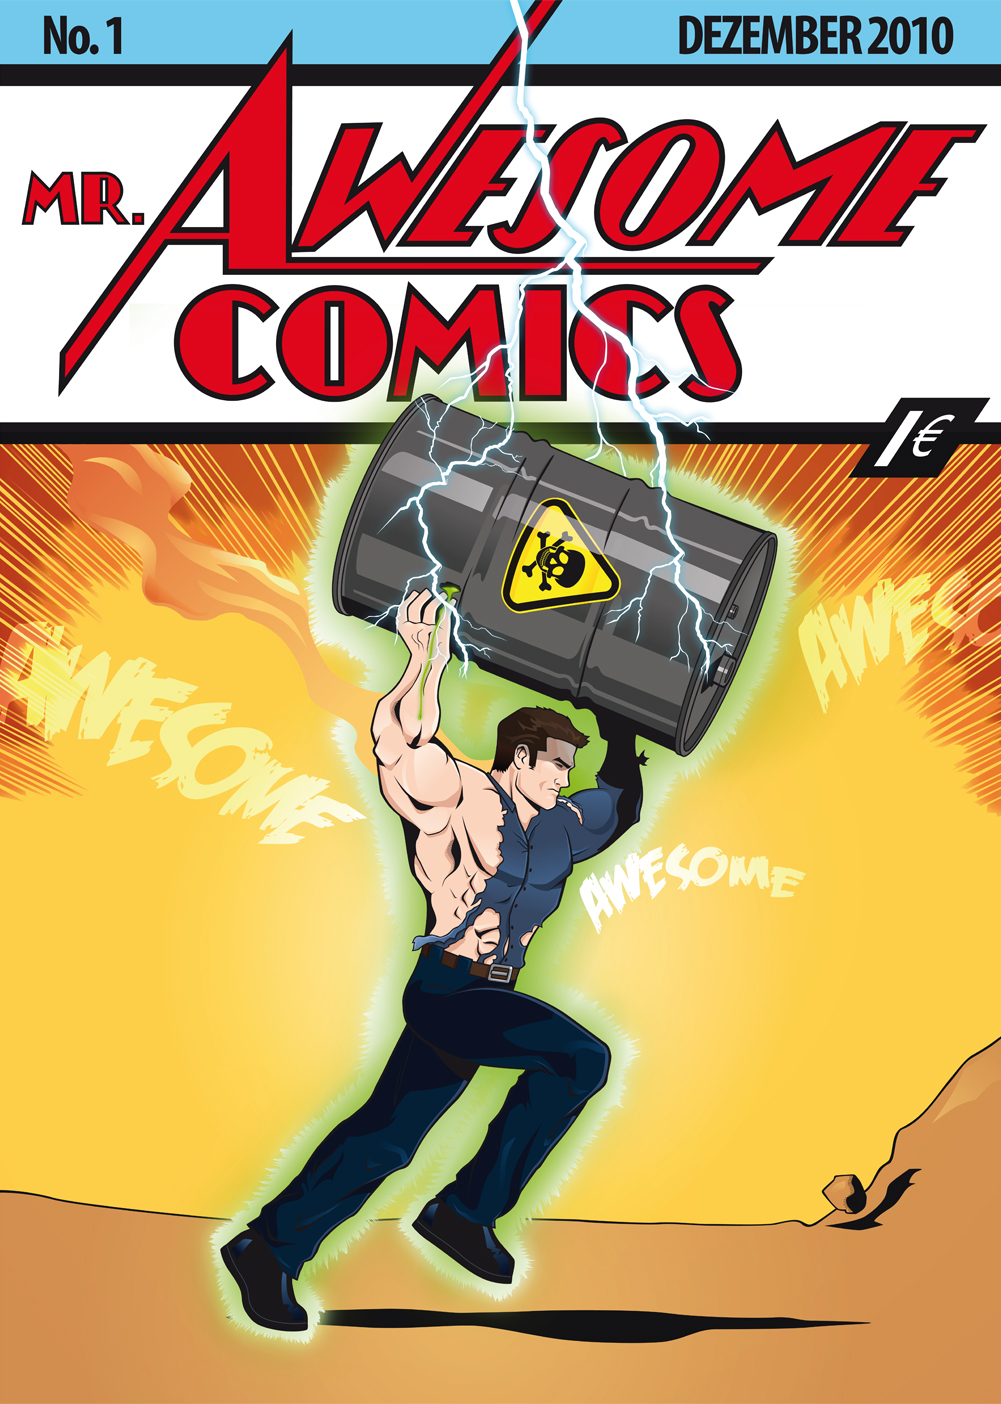 Mr. Awesome Comics No1